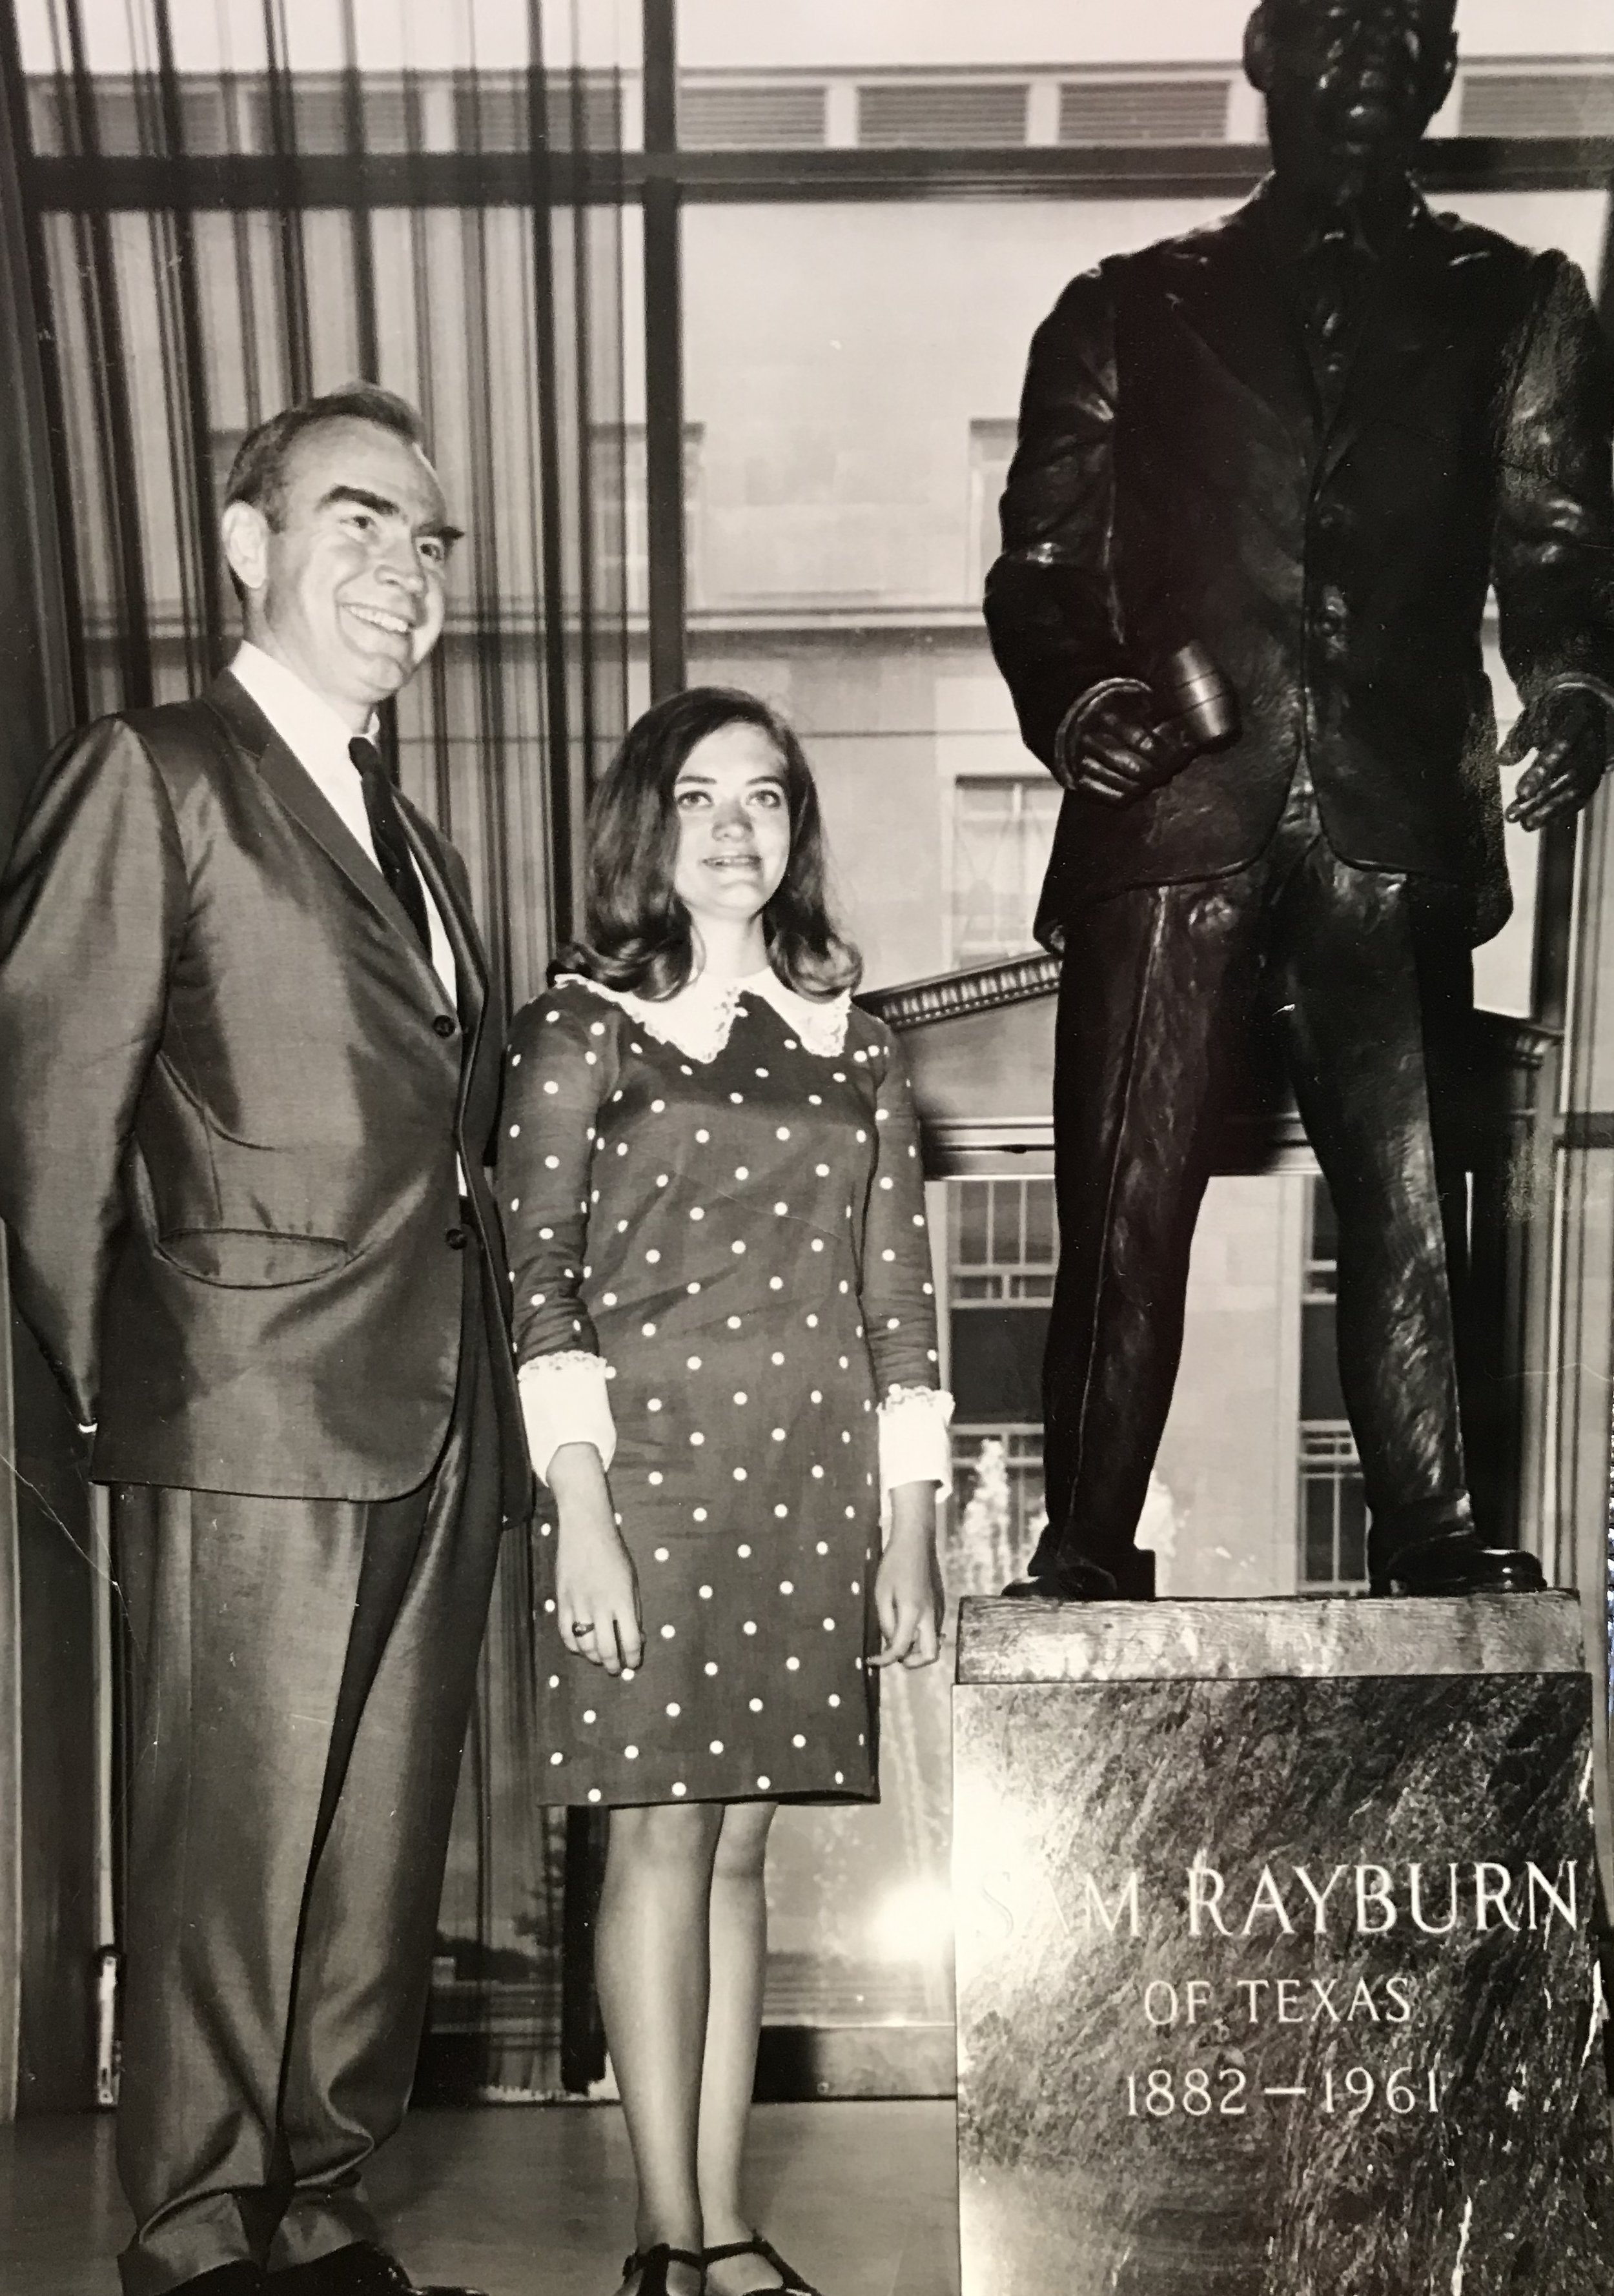 Cyndy with former Speaker of the U.S. House Representatives, Jim Wright (c. 1970s)